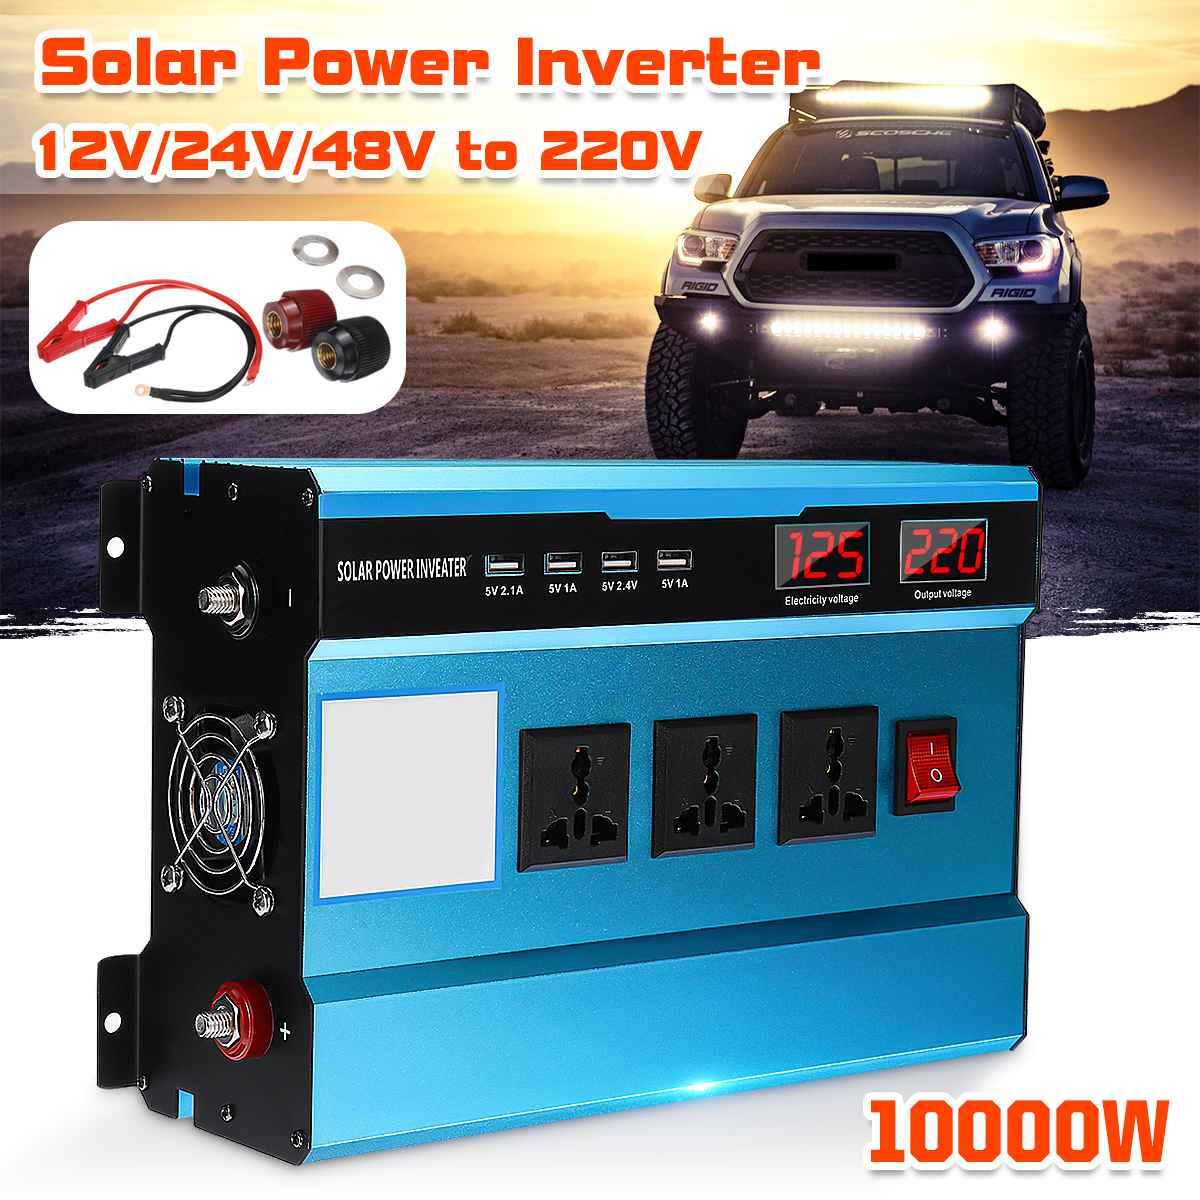 Dual-Digital-Display 10000W Auto Inverter DC 12 V/24 V/48 V Zu AC 220V solar Power Inverter Ladegerät Spannung Konverter Transformator